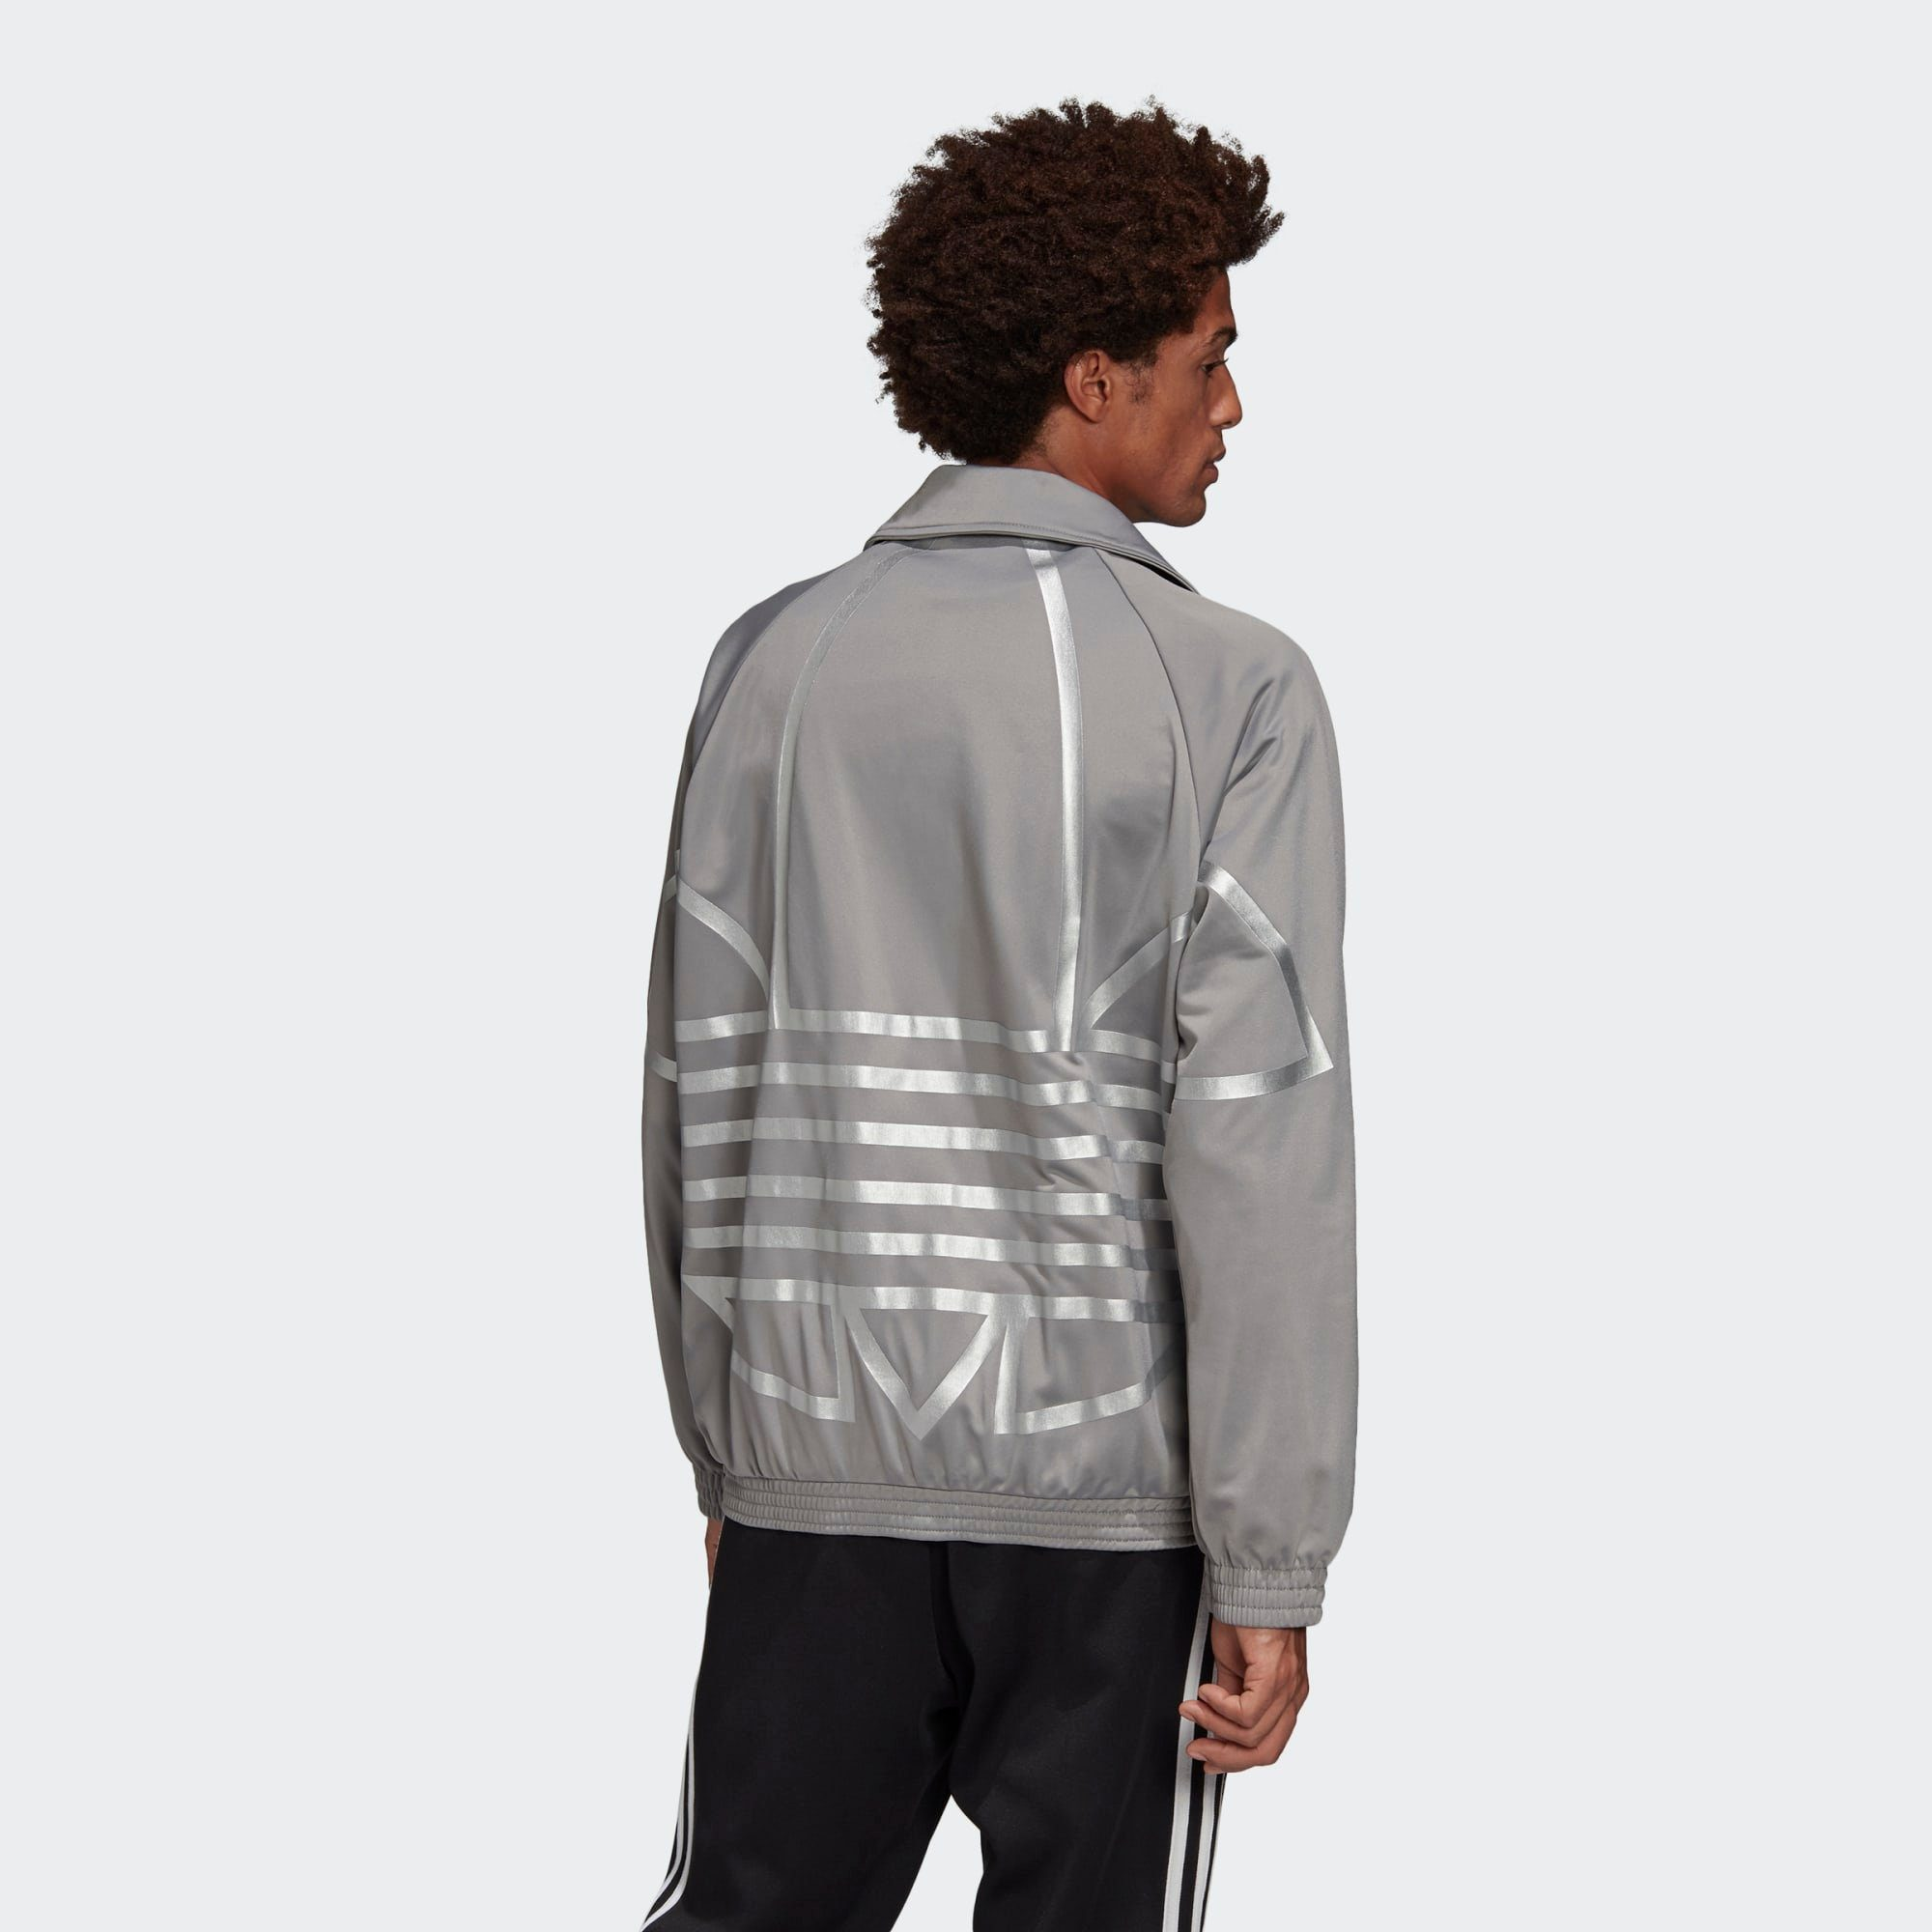 adidas Originals Sweatjacke Metallic Originals Jacke online kaufen PySdDE